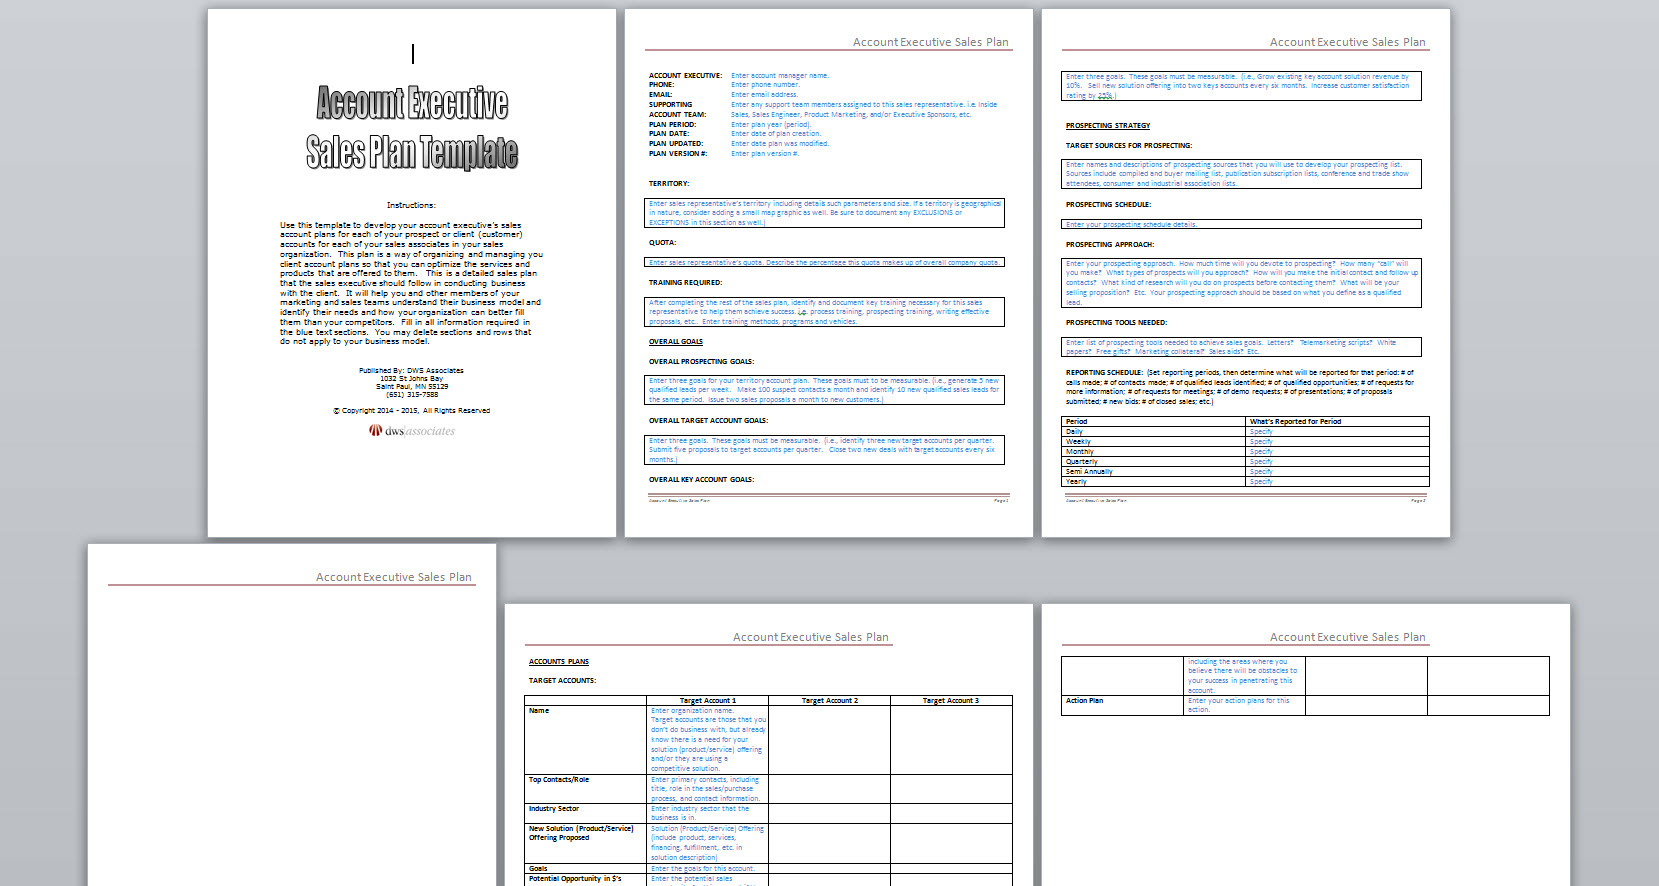 Account executive sales plan template sales executive sales plan template accmission Gallery